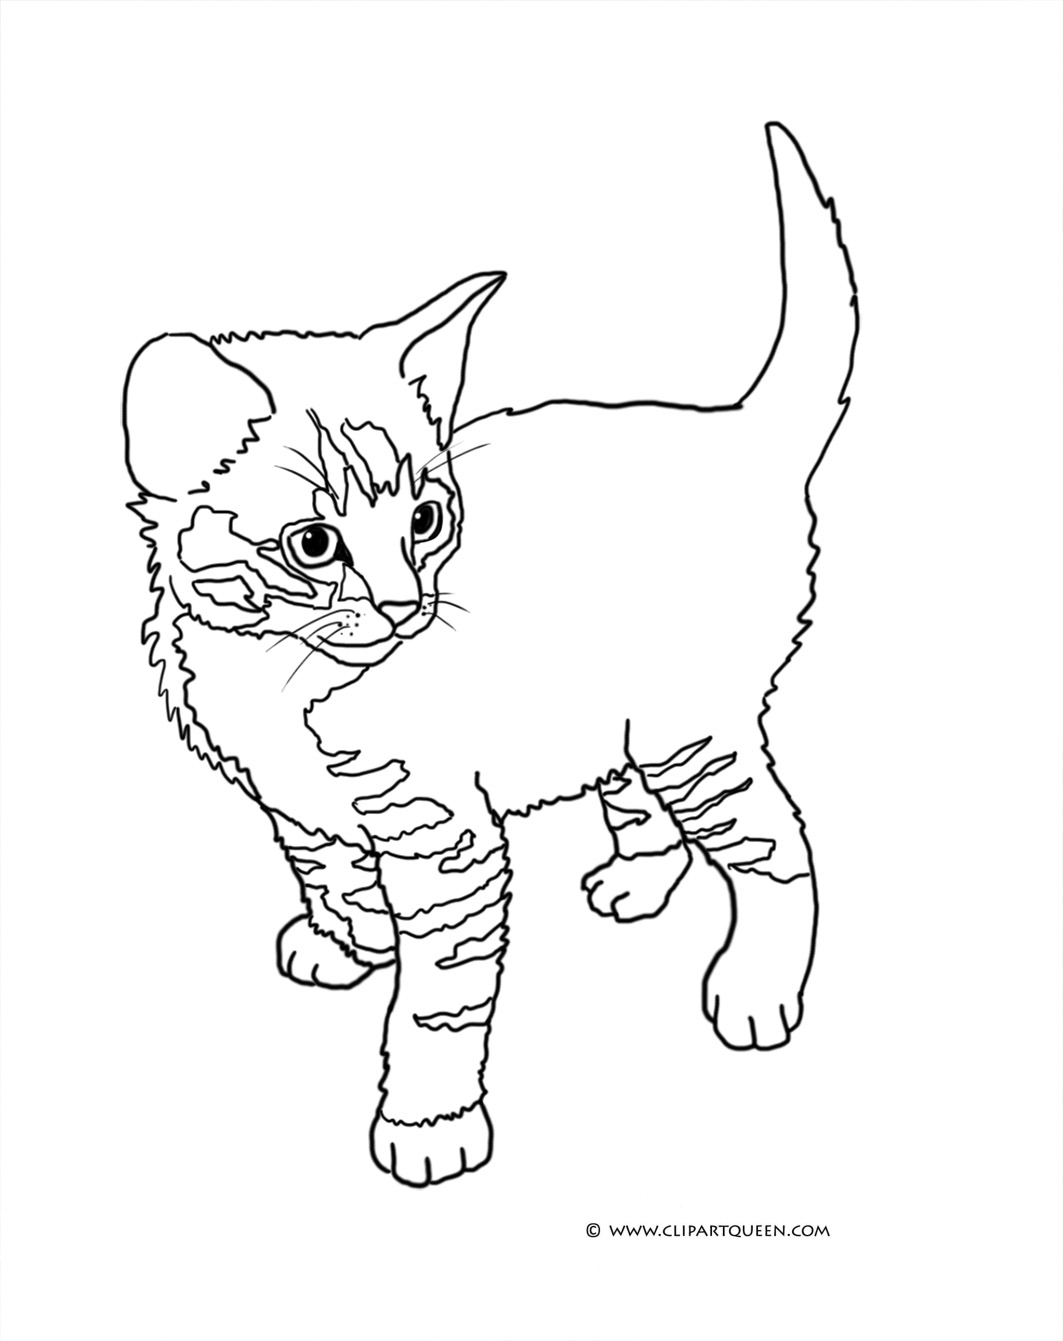 kittens coloring pages to print baby puppy and kitten coloring pages coloring home coloring to pages kittens print